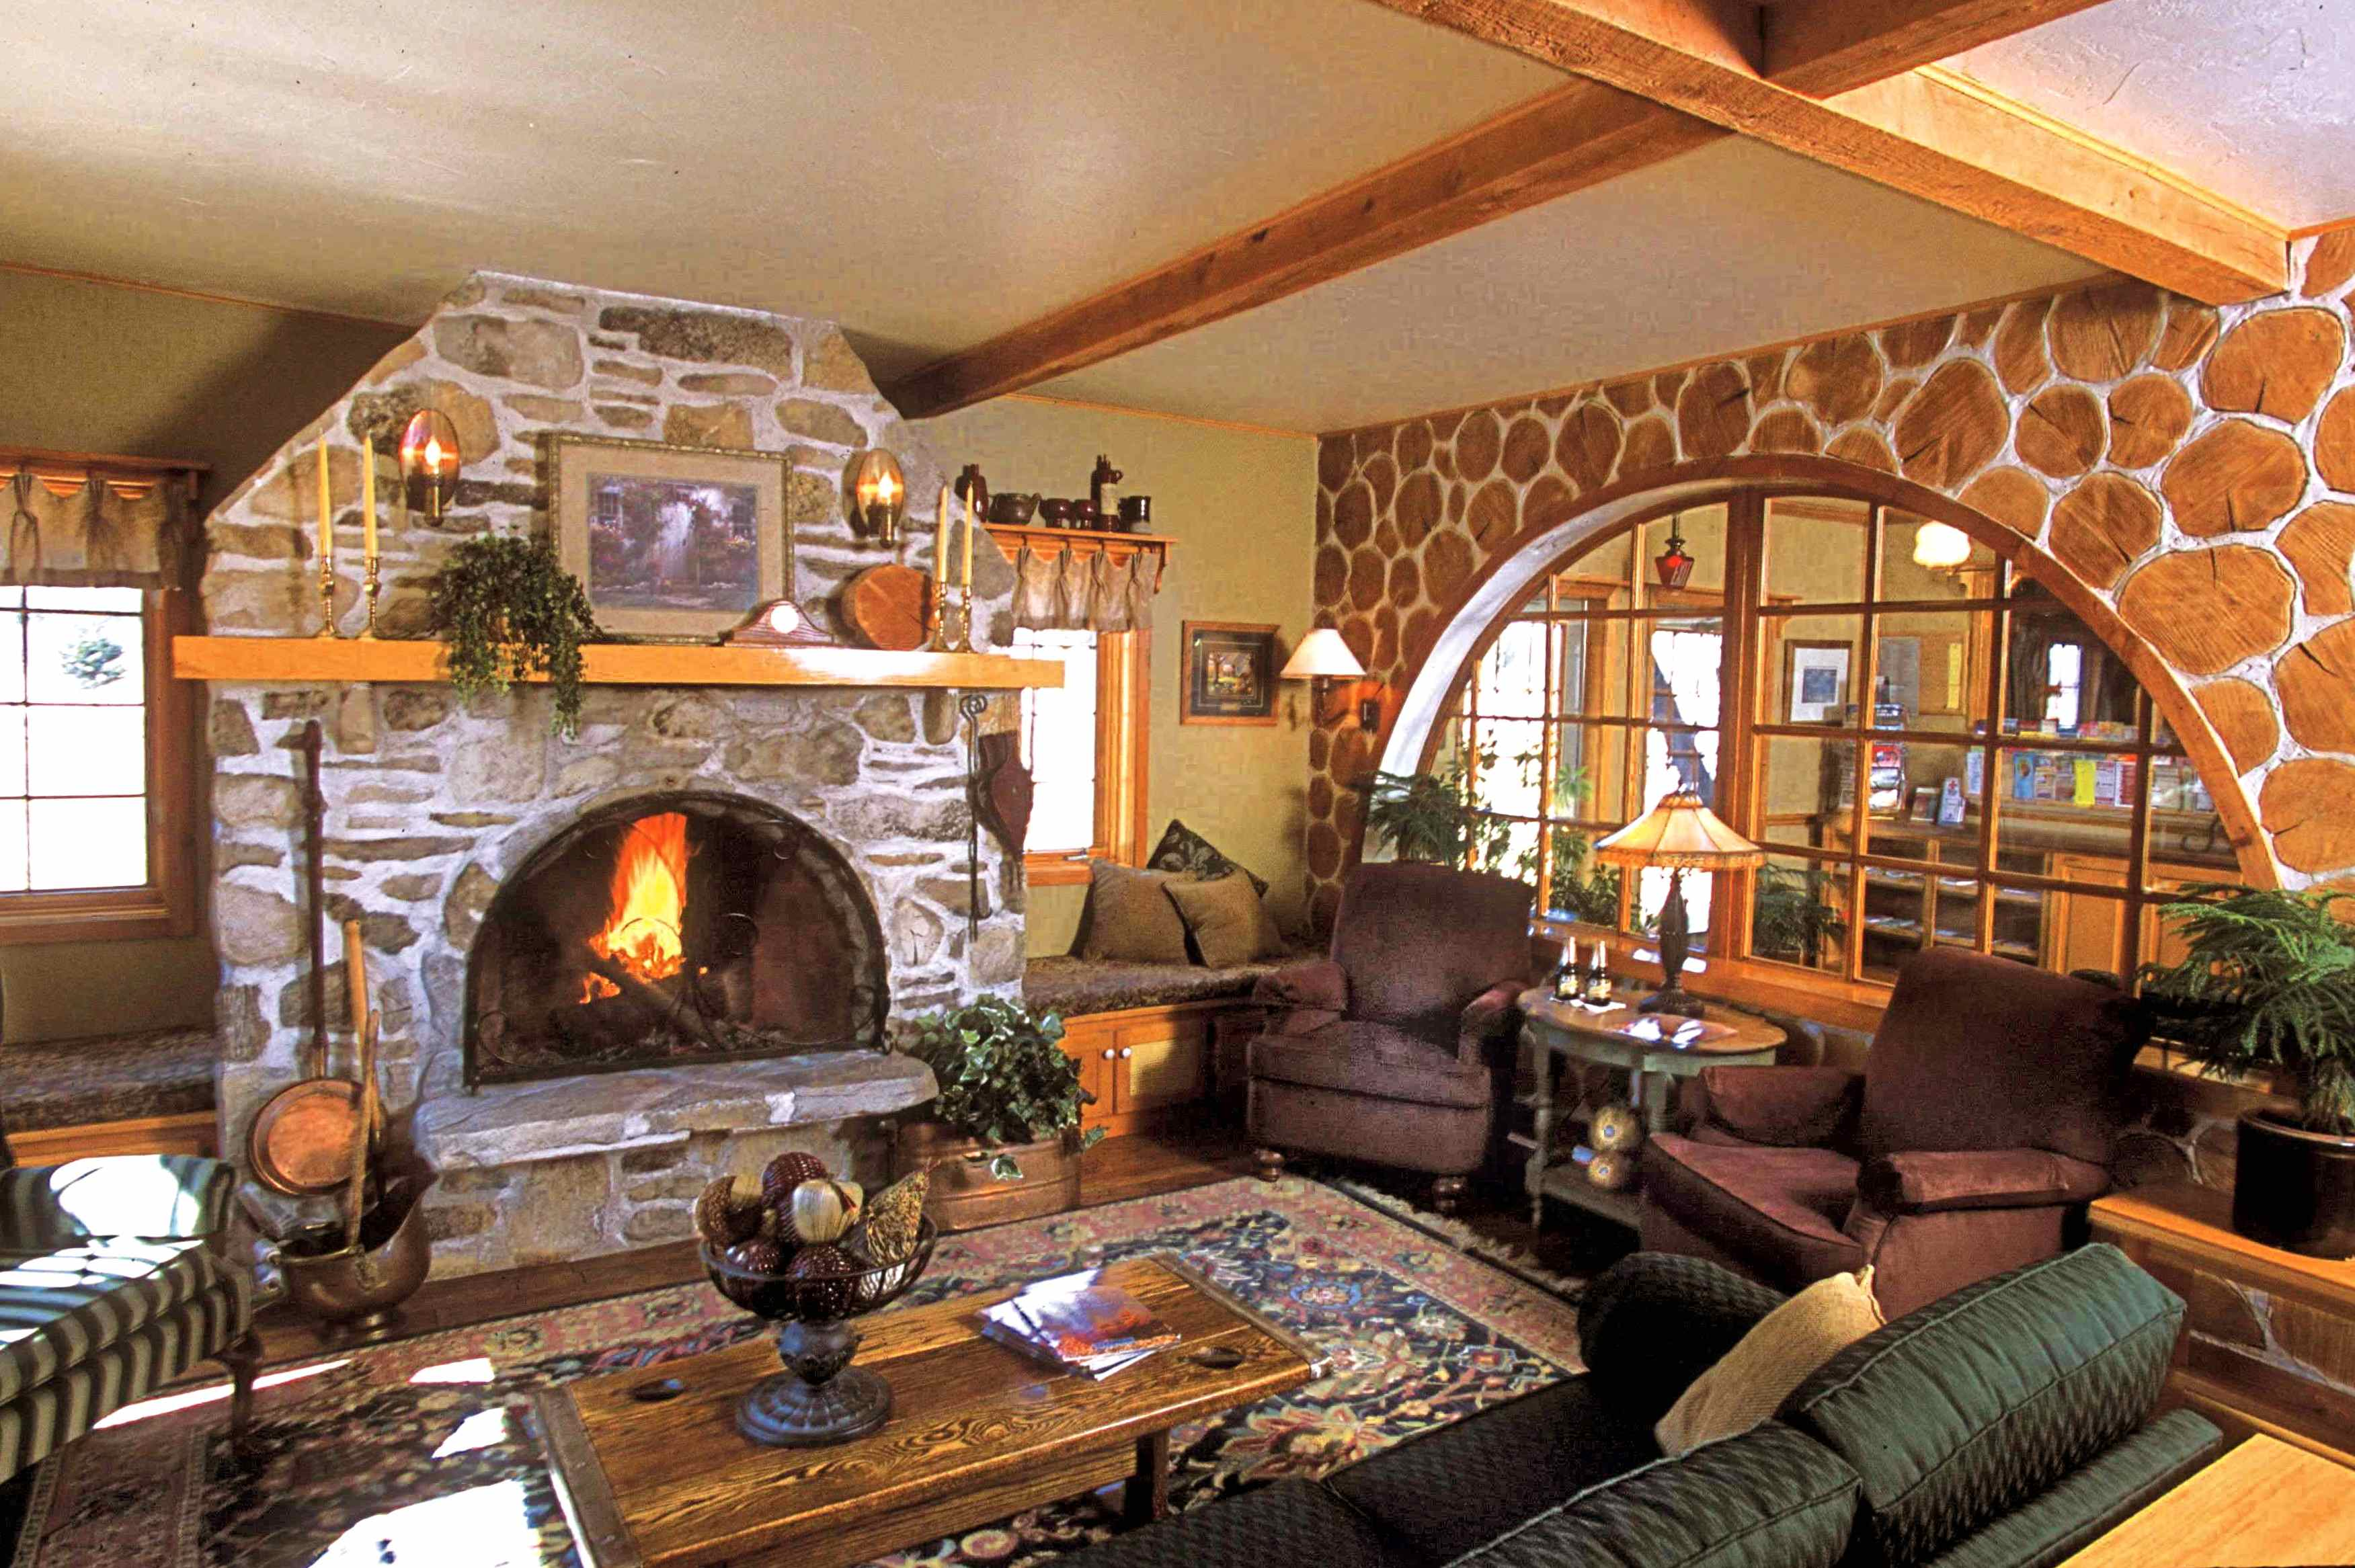 Fish Creek Wi lodging, Settlement Courtyard Inn and Lavender Spa lobby, Door County